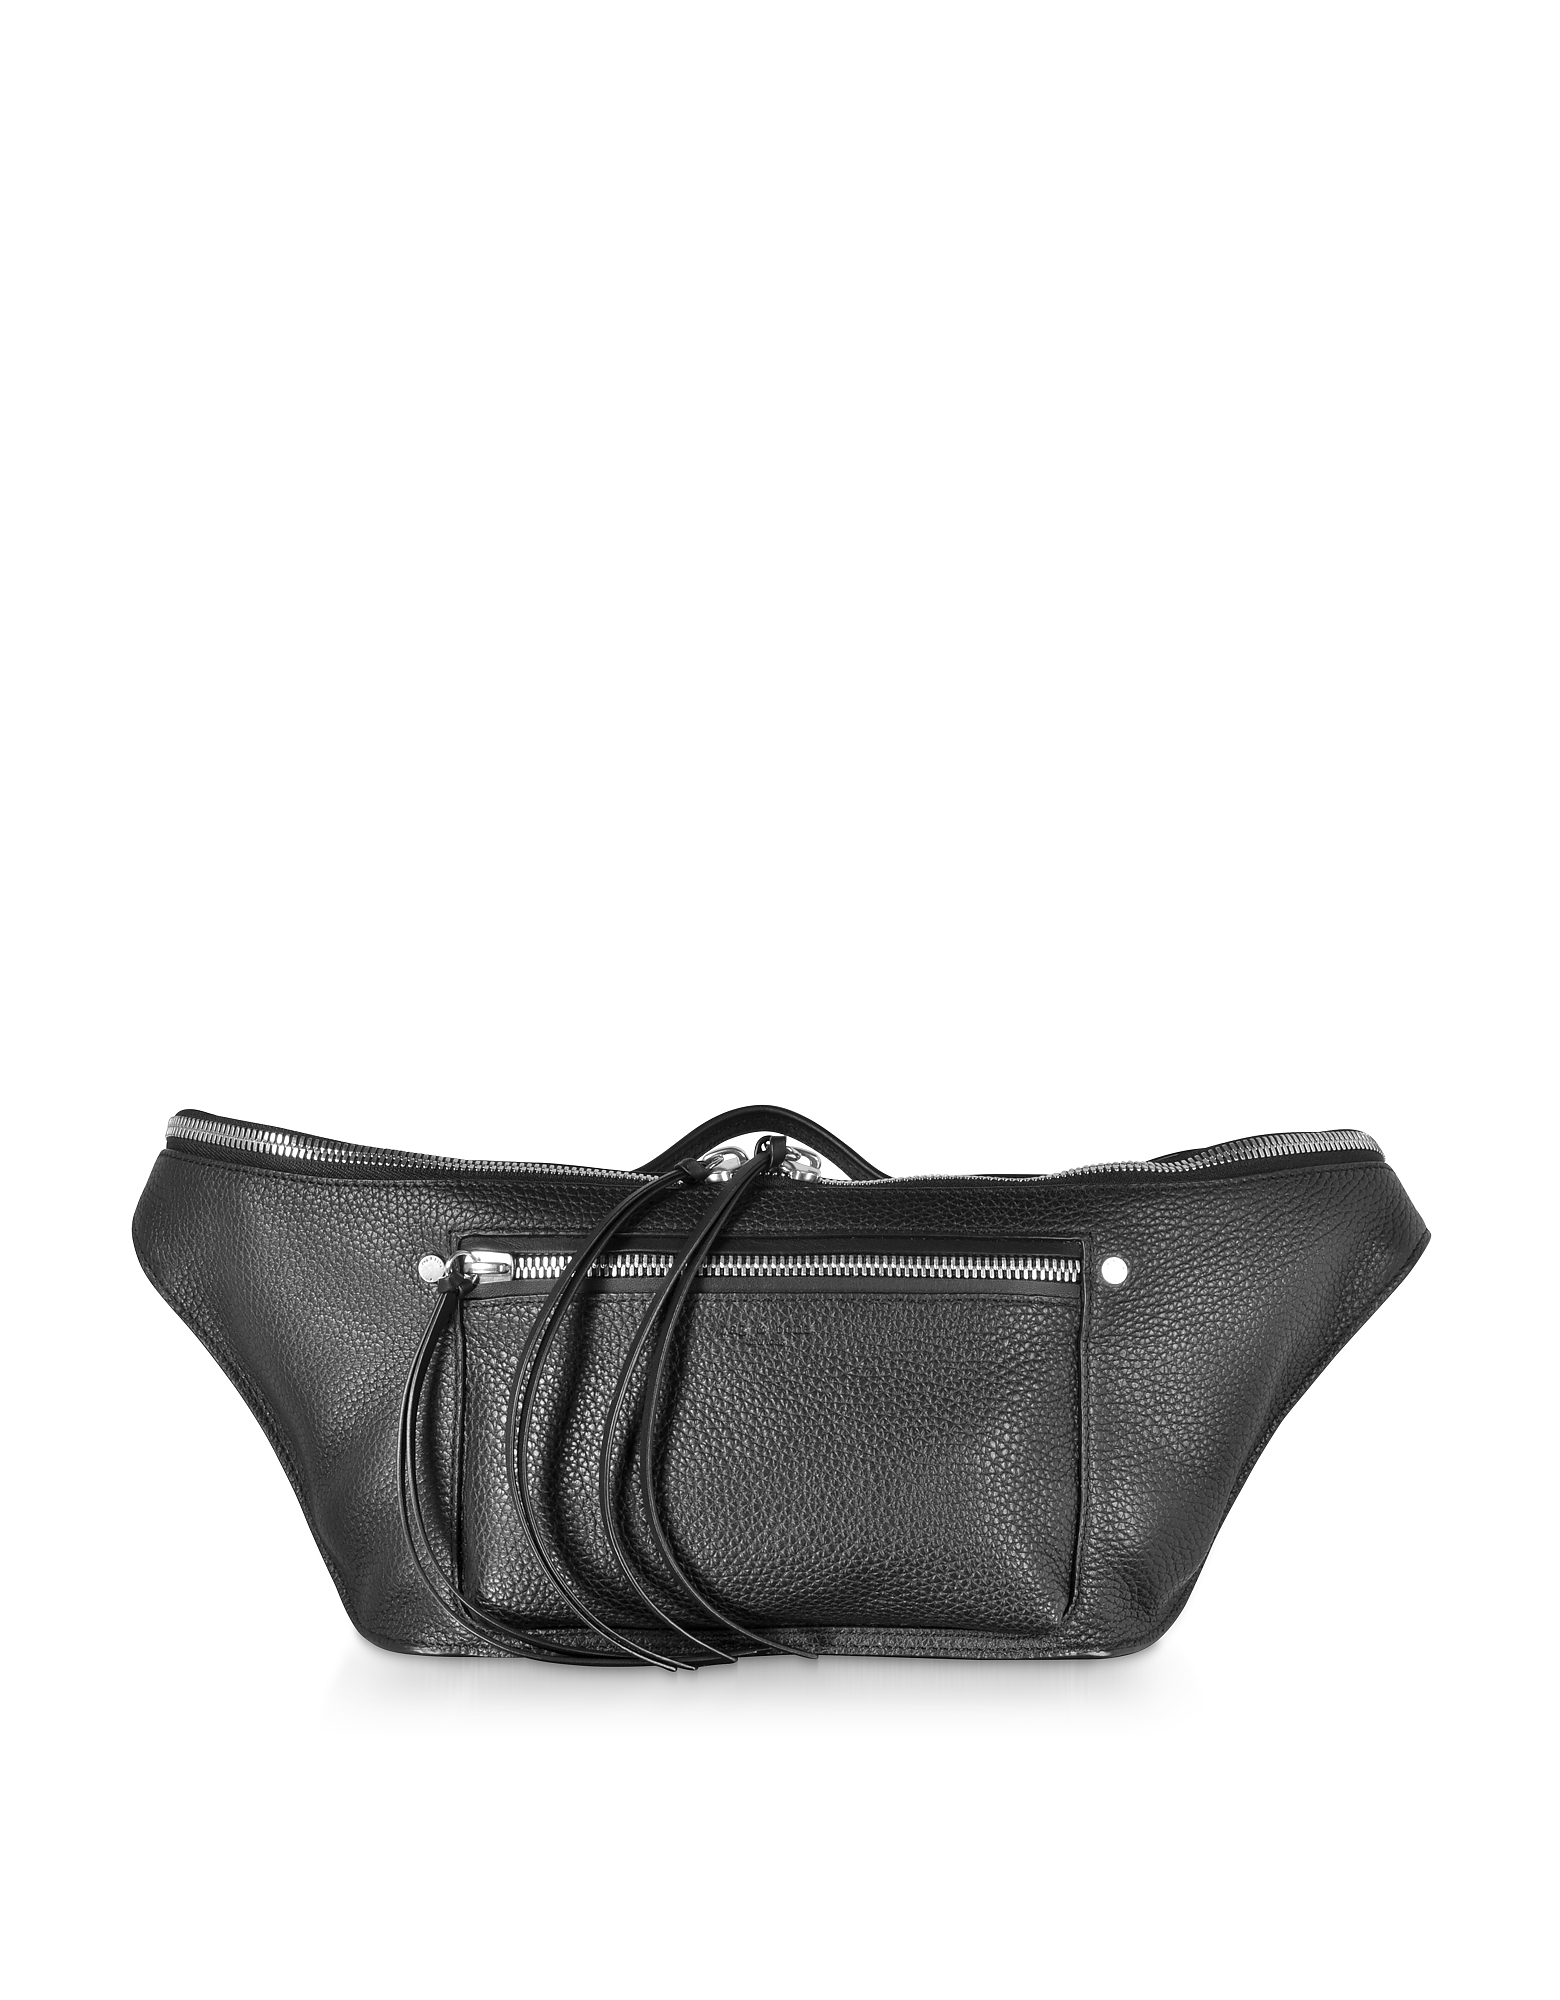 Black Leather Large Elliot Fanny Pack / Belt Bag